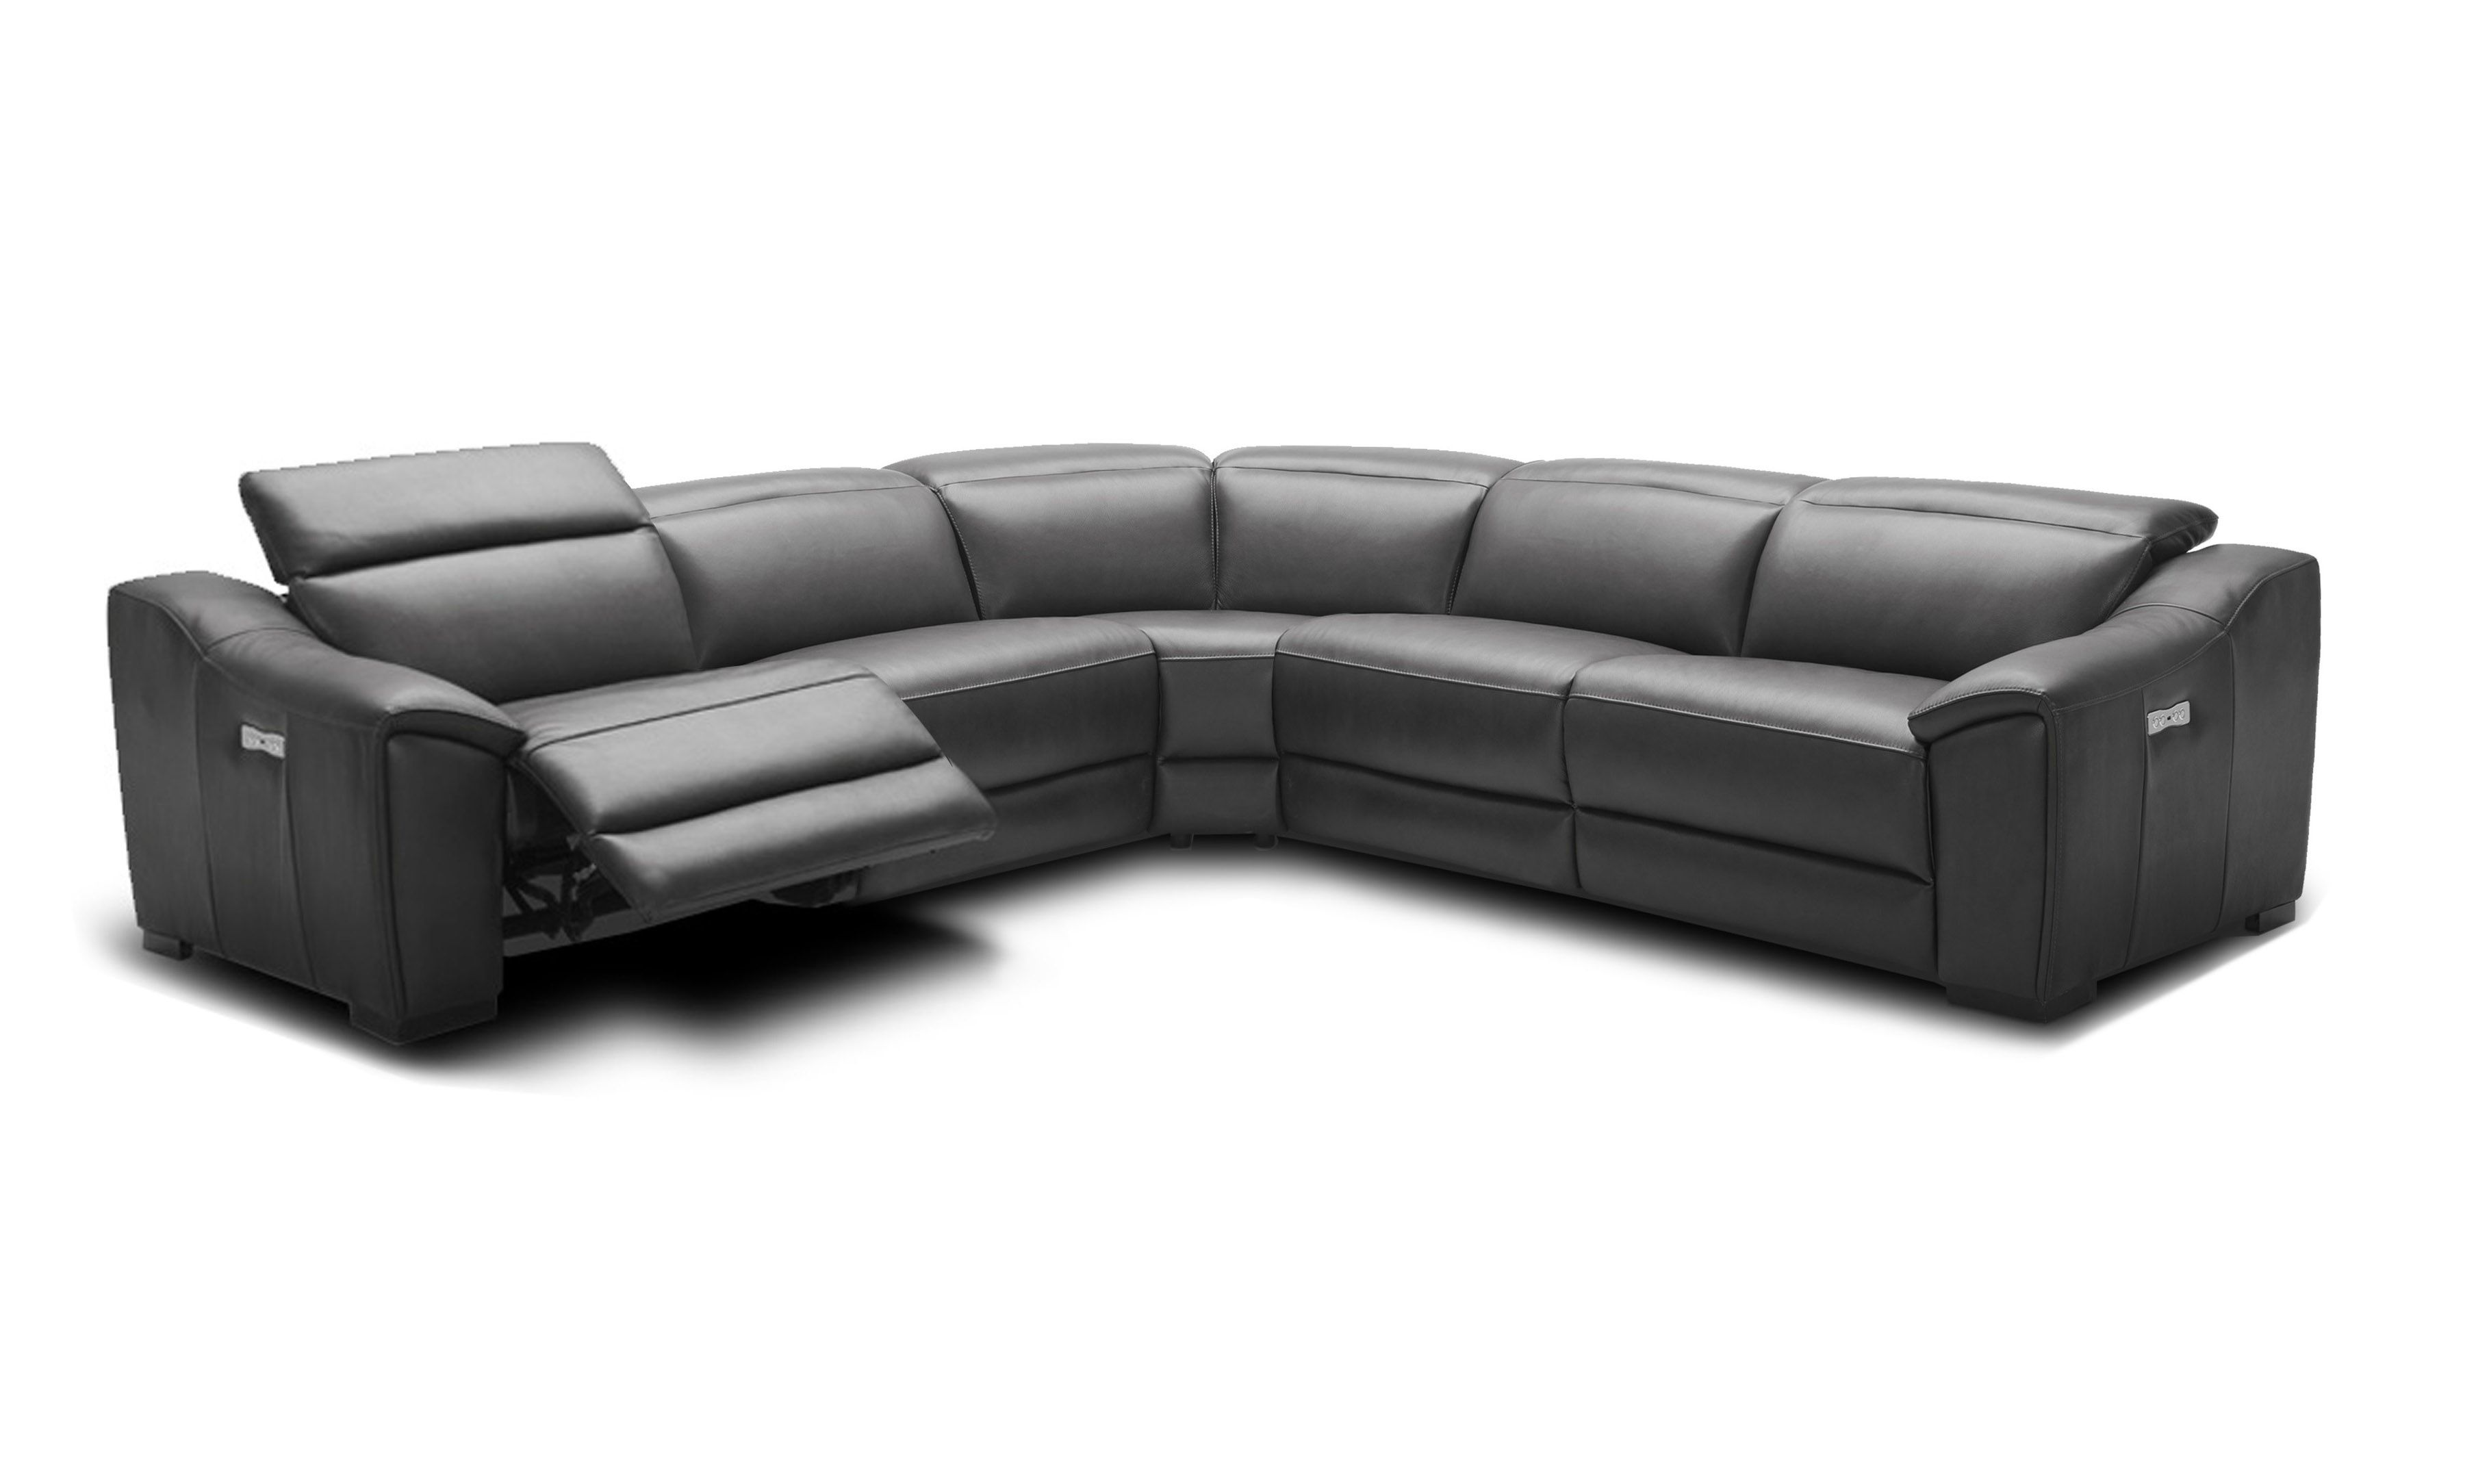 Advanced Adjustable Curved Sectional Sofa In Leather Italian Leather Sectional Sofa Sectional Sofa Leather Sectional Sofas